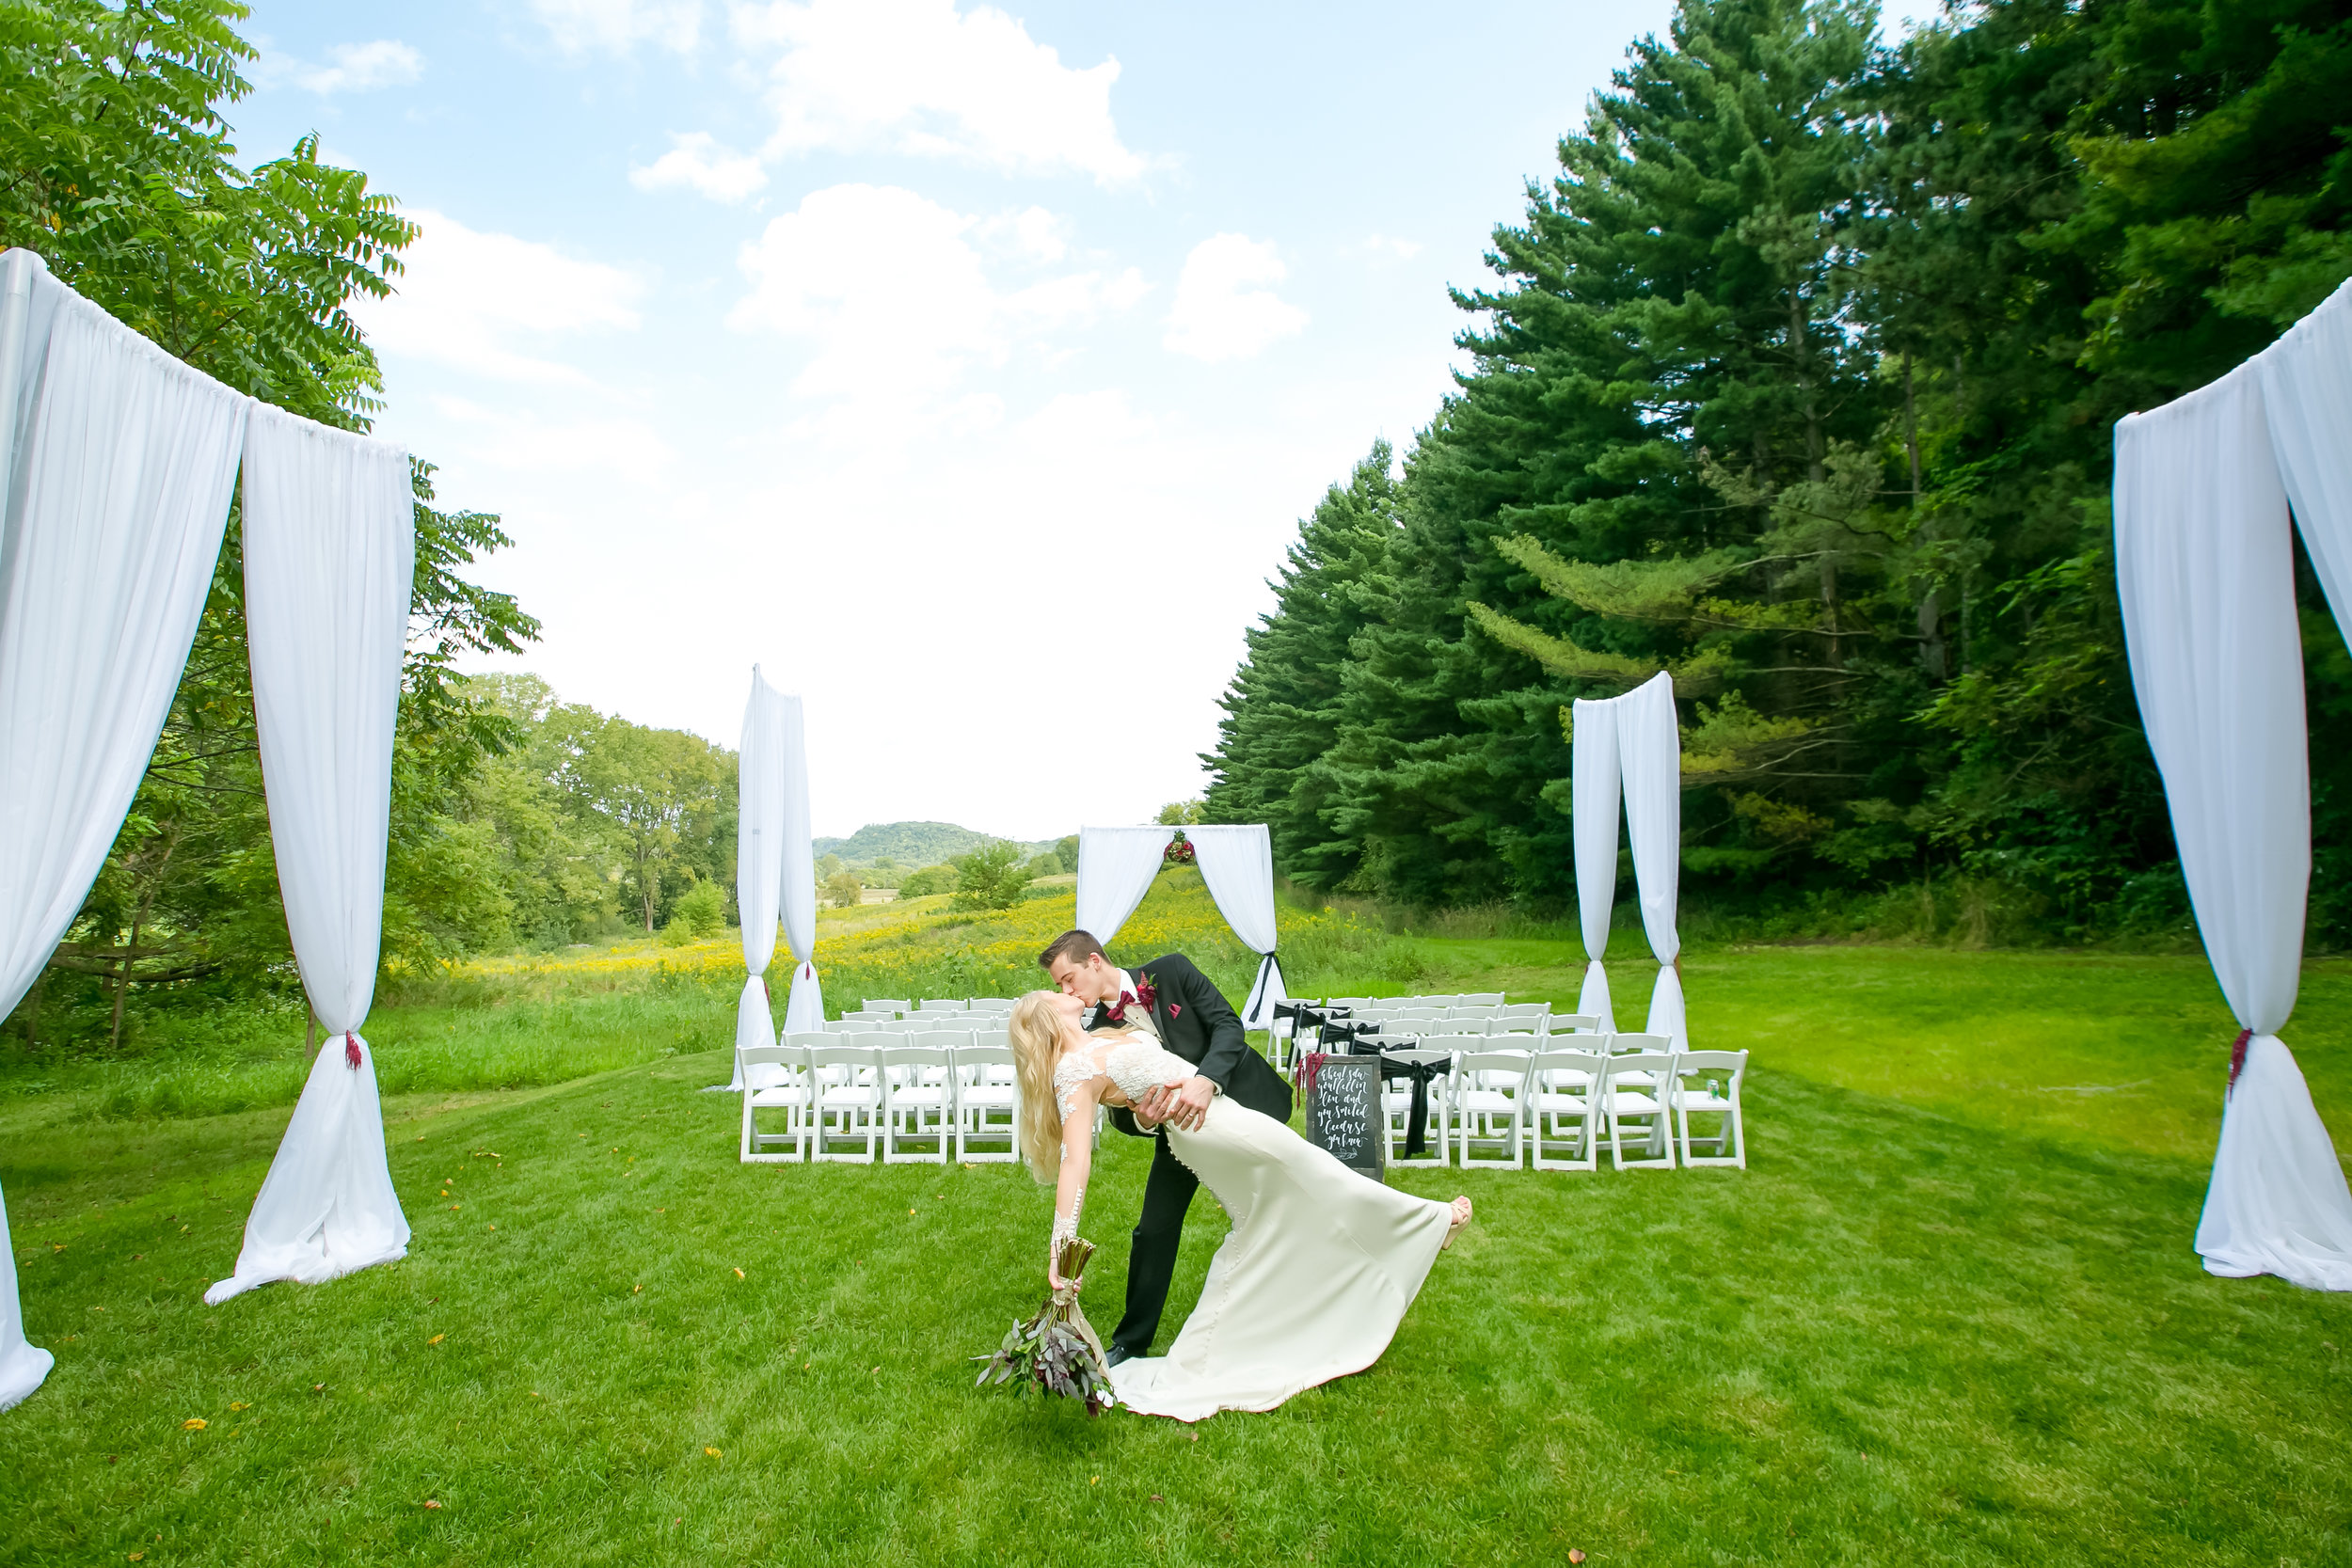 Outdoor ceremony site looking like a church with white curtains and chairs.